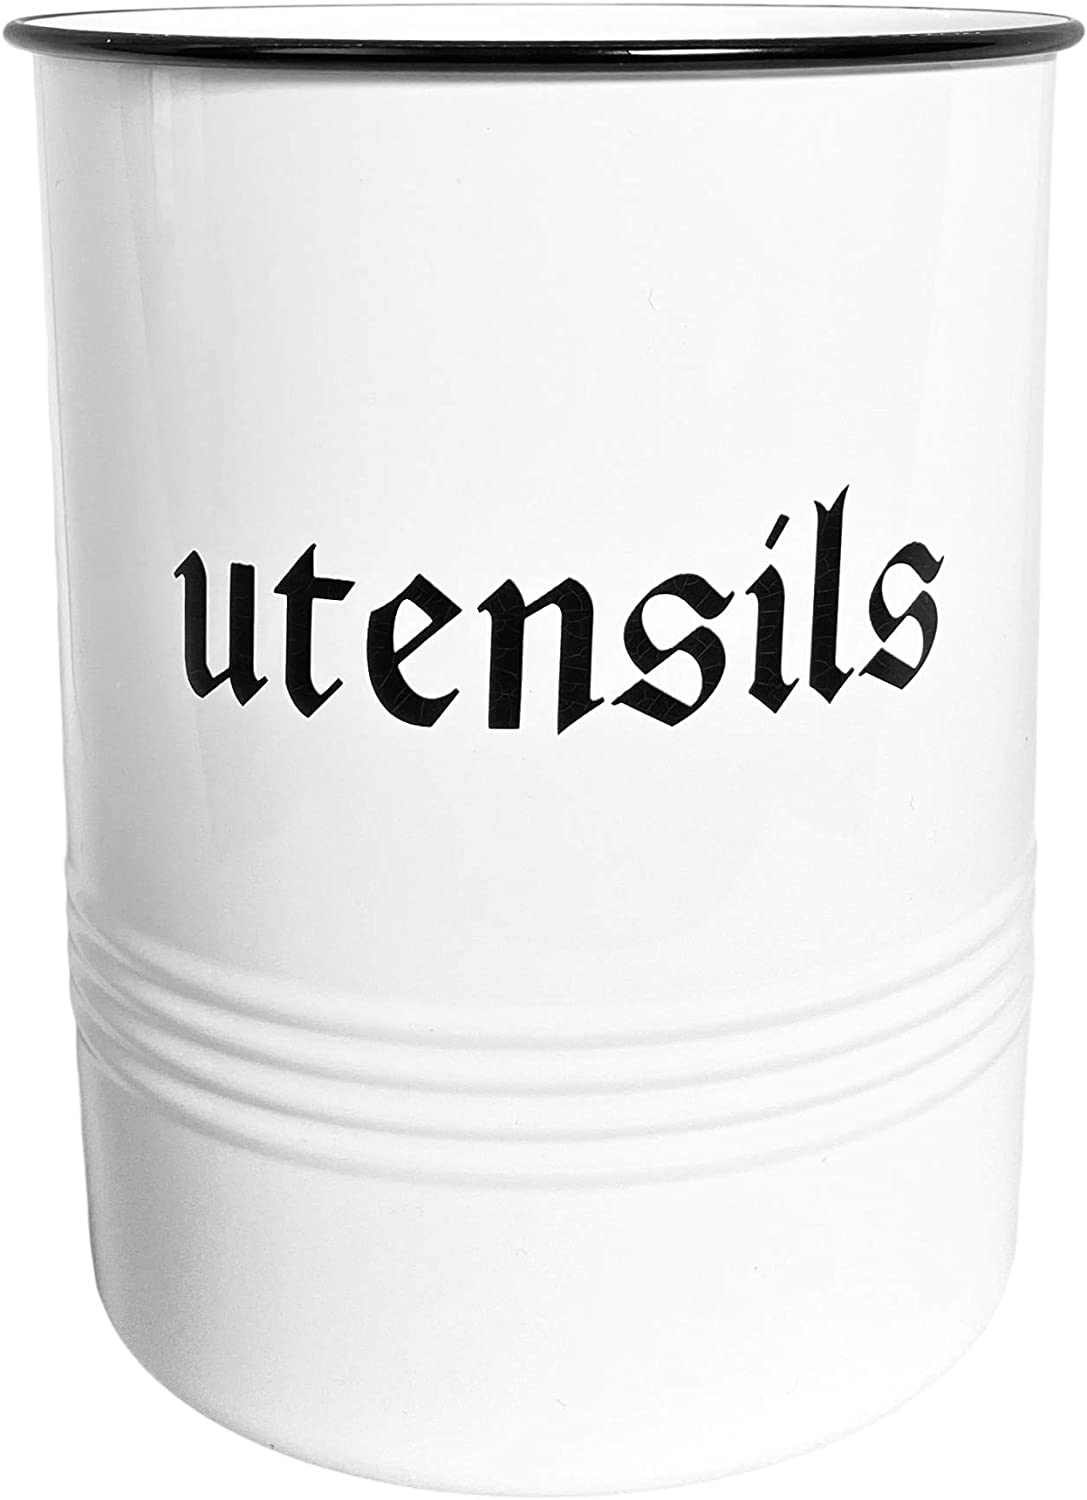 Utensils Holder Countertop - Large Kitchen Tool Storage Crock Organizer - Rustic Vintage Farmhouse Home Kitchen Decor - White Metal With Premium Padded Base By Haus Therapy